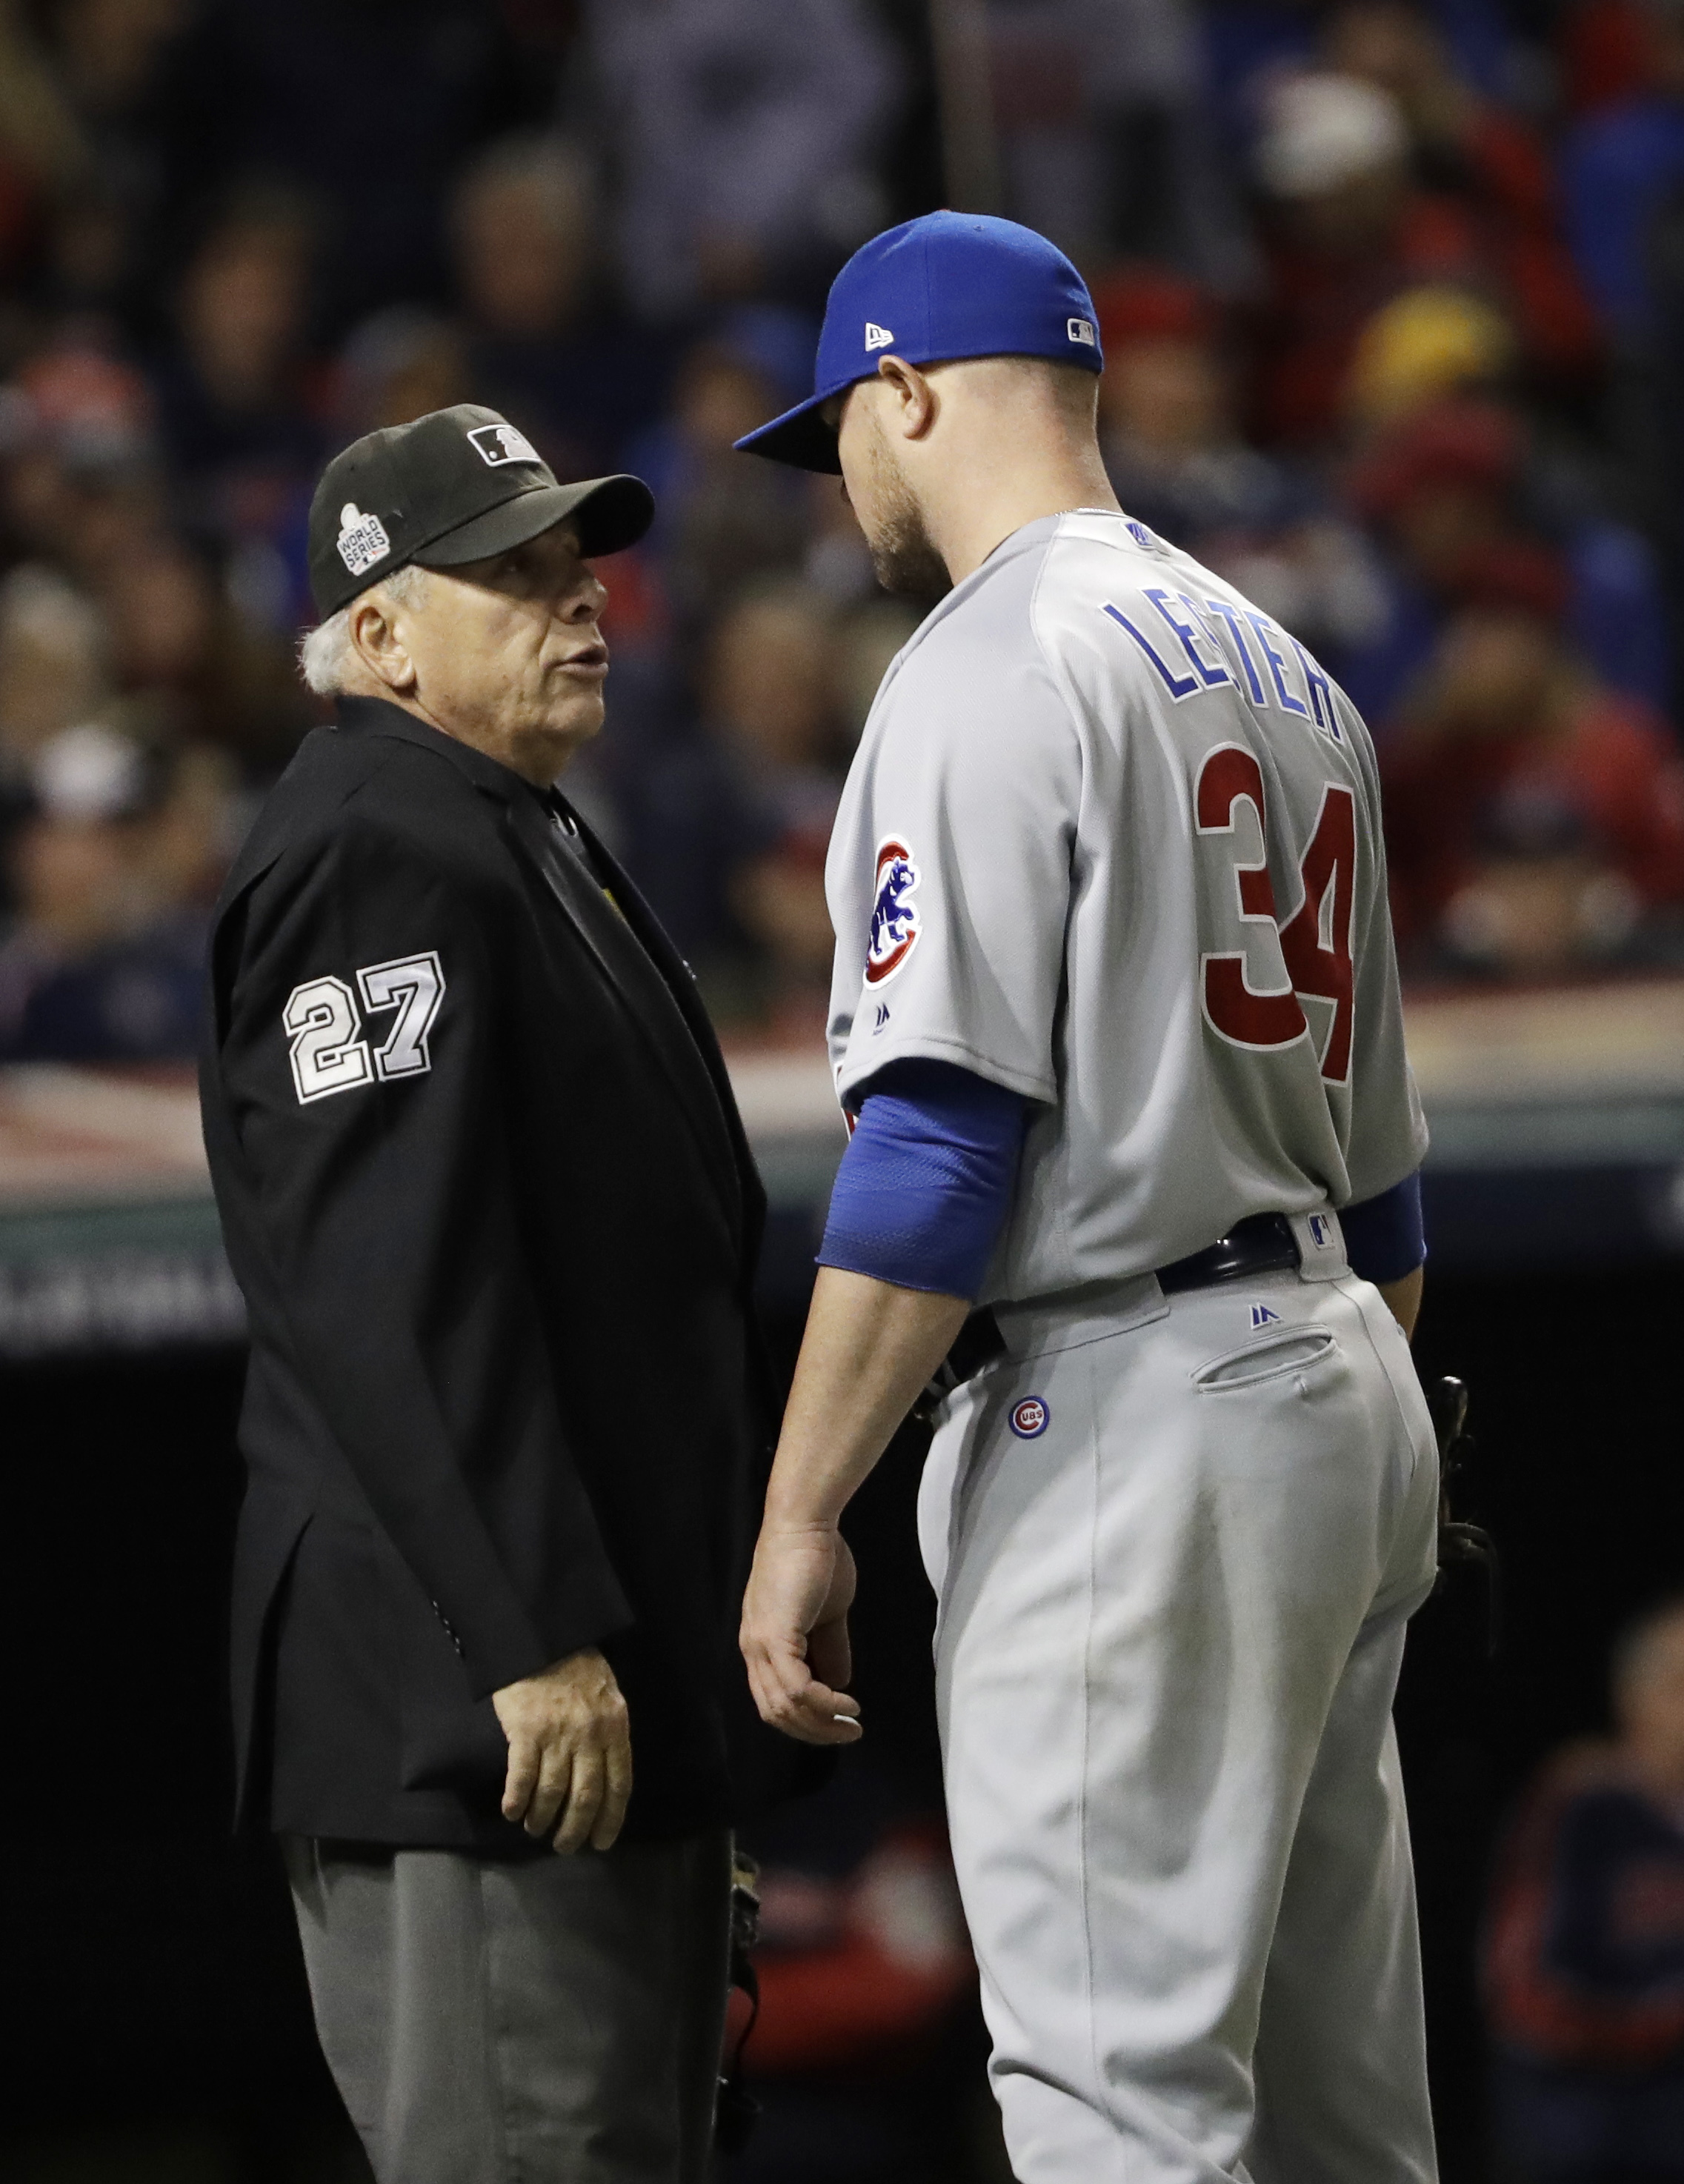 Chicago Cubs starting pitcher Jon Lester talks to home plate umpire Larry Vanover after the third inning of Game 1 of the Major League Baseball World Series against the Cleveland Indians Tuesday, Oct. 25, 2016, in Cleveland. (AP Photo/David J. Phillip)